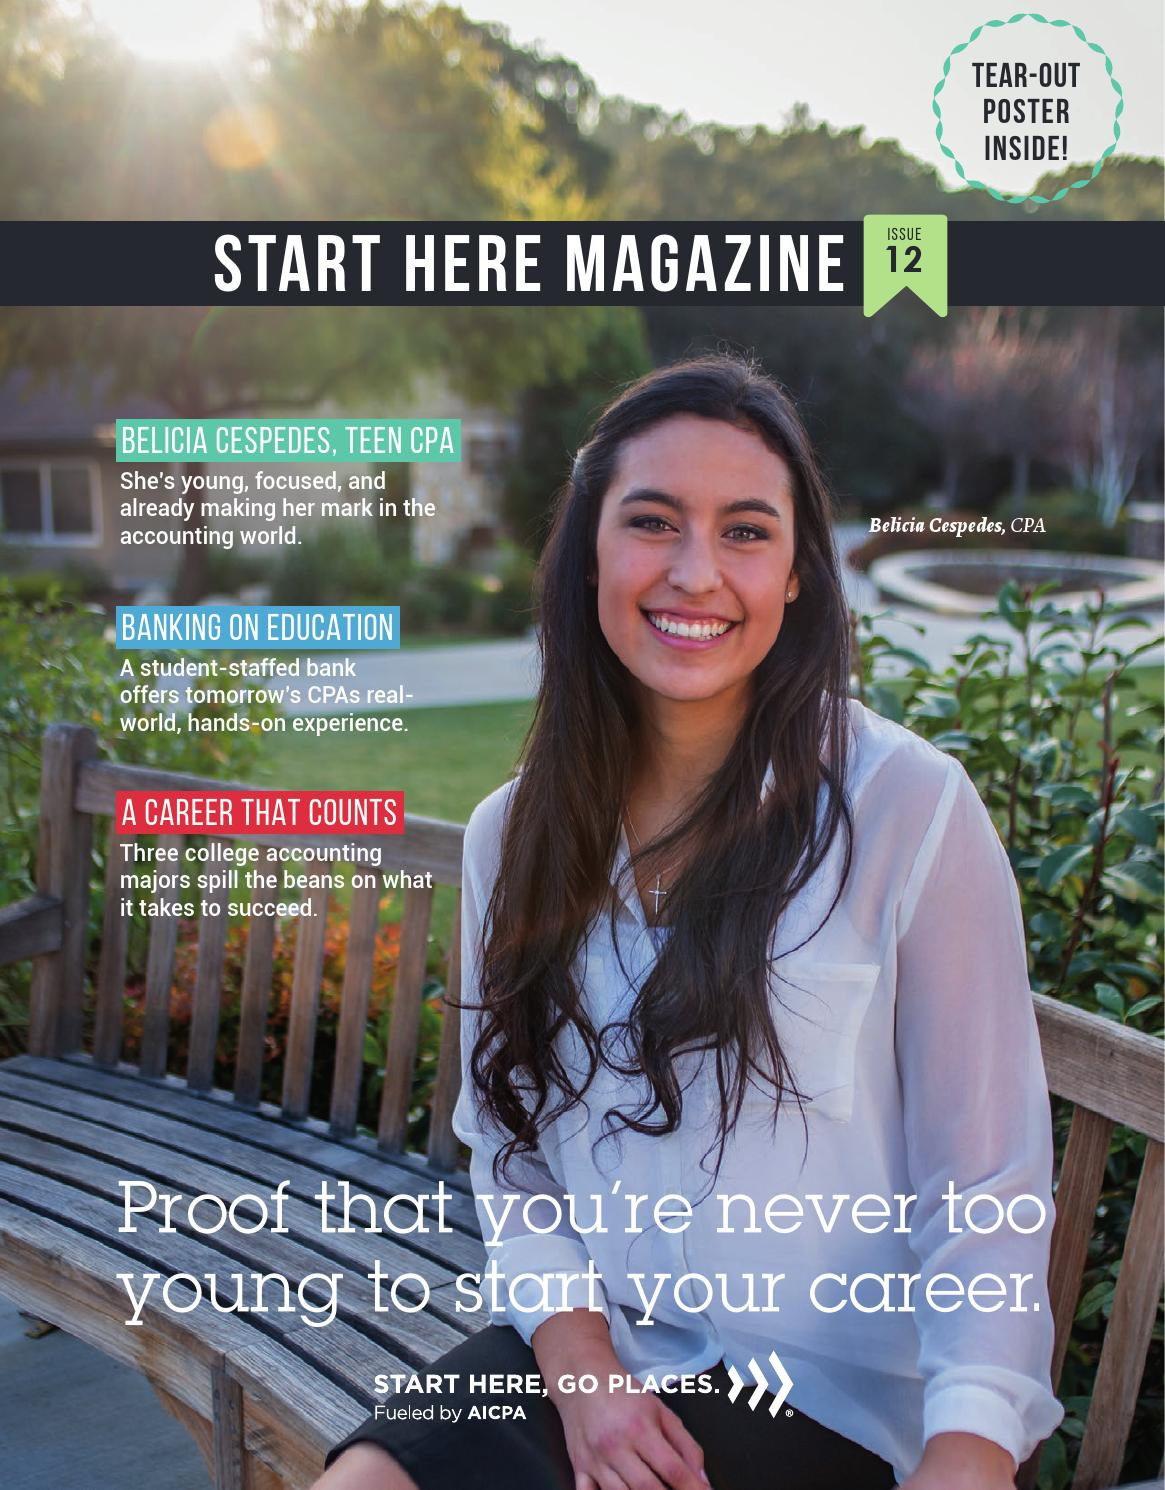 Start Here Issue 12